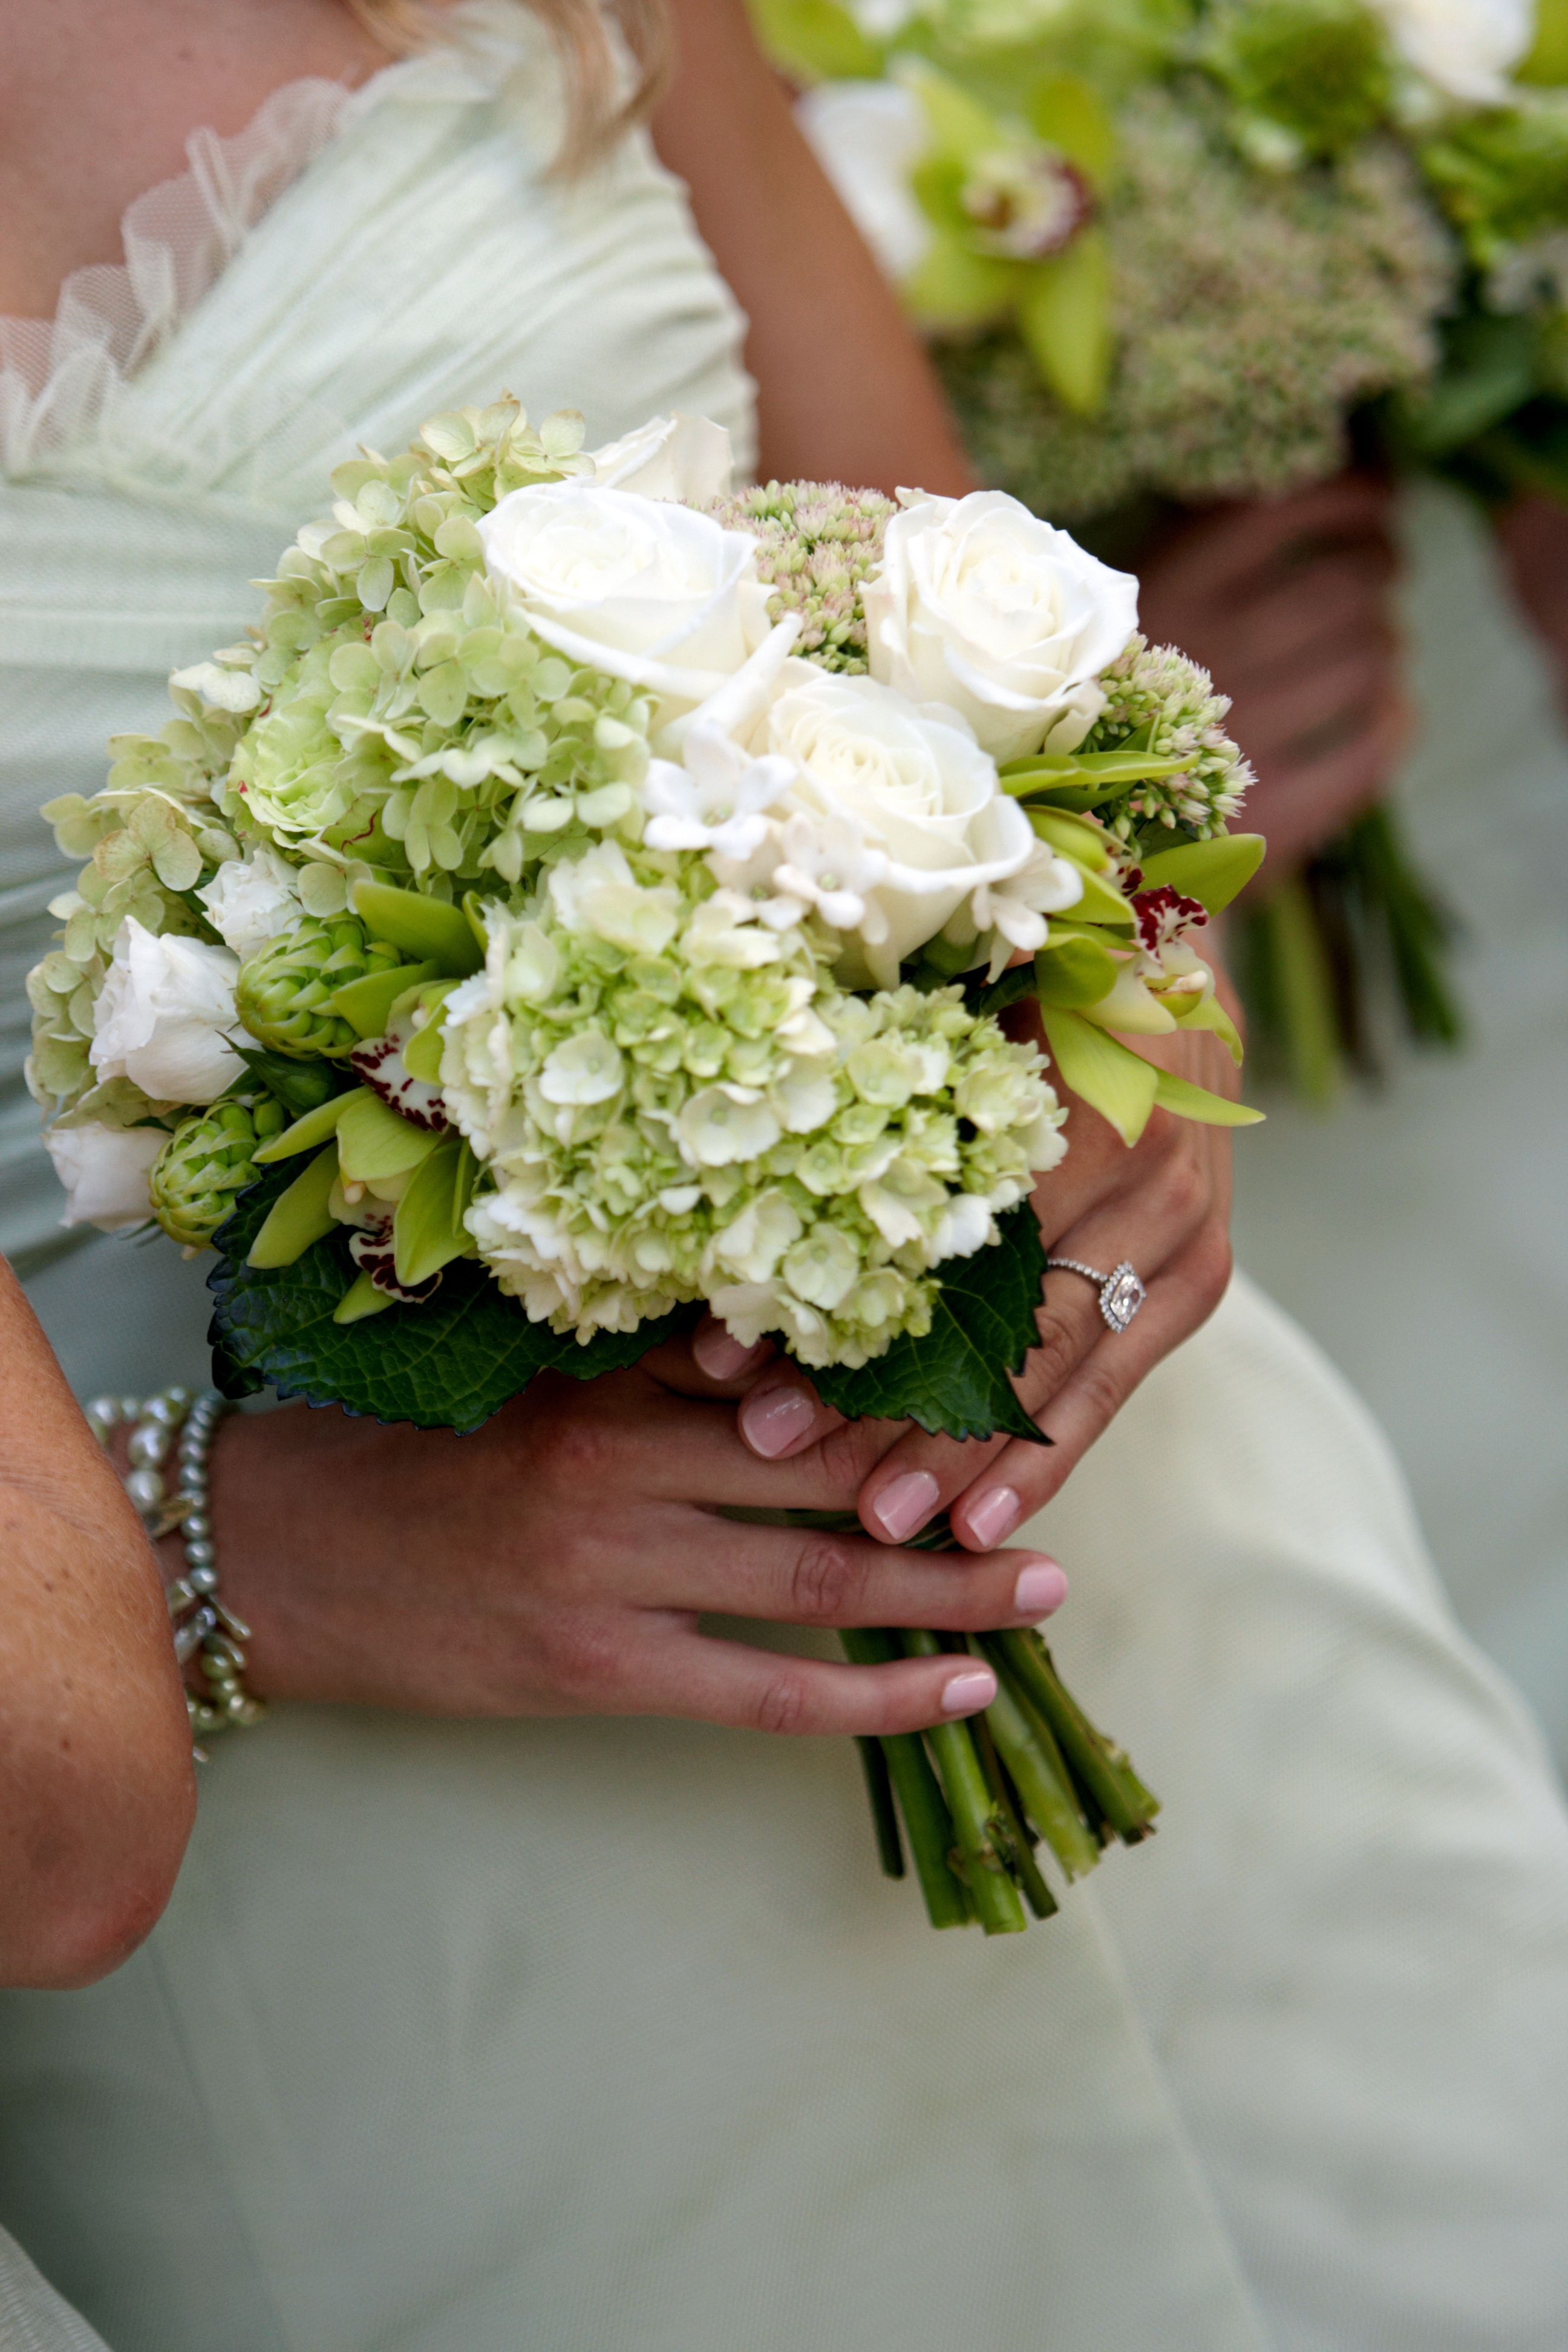 Isari Flower Studio Event Design Hydrangeas Wedding Hydrangea Bouquet Wedding Green Hydrangea Wedding